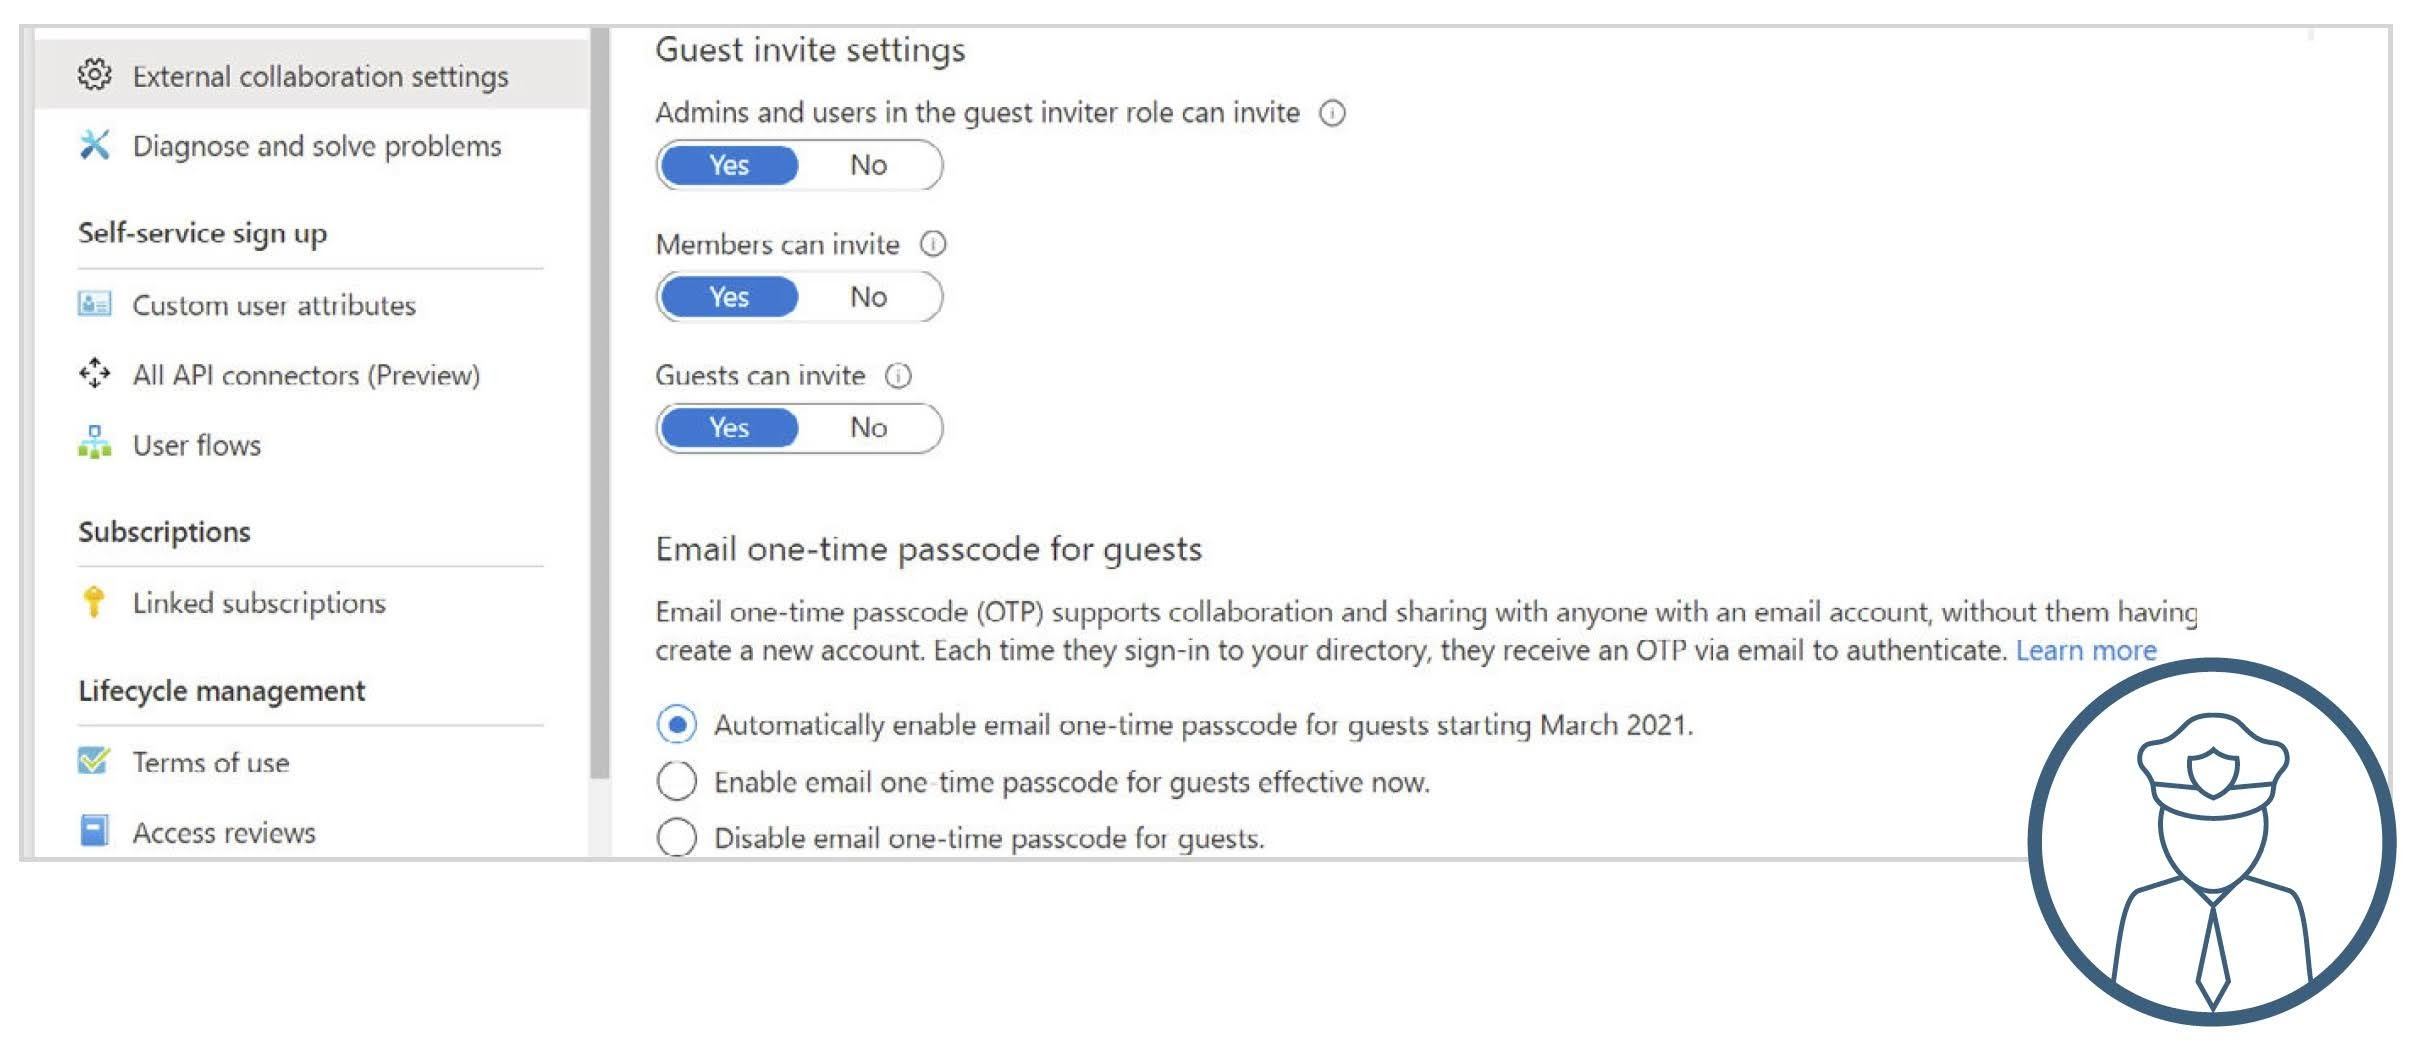 Guest invite settings and email one-time passcode for guests